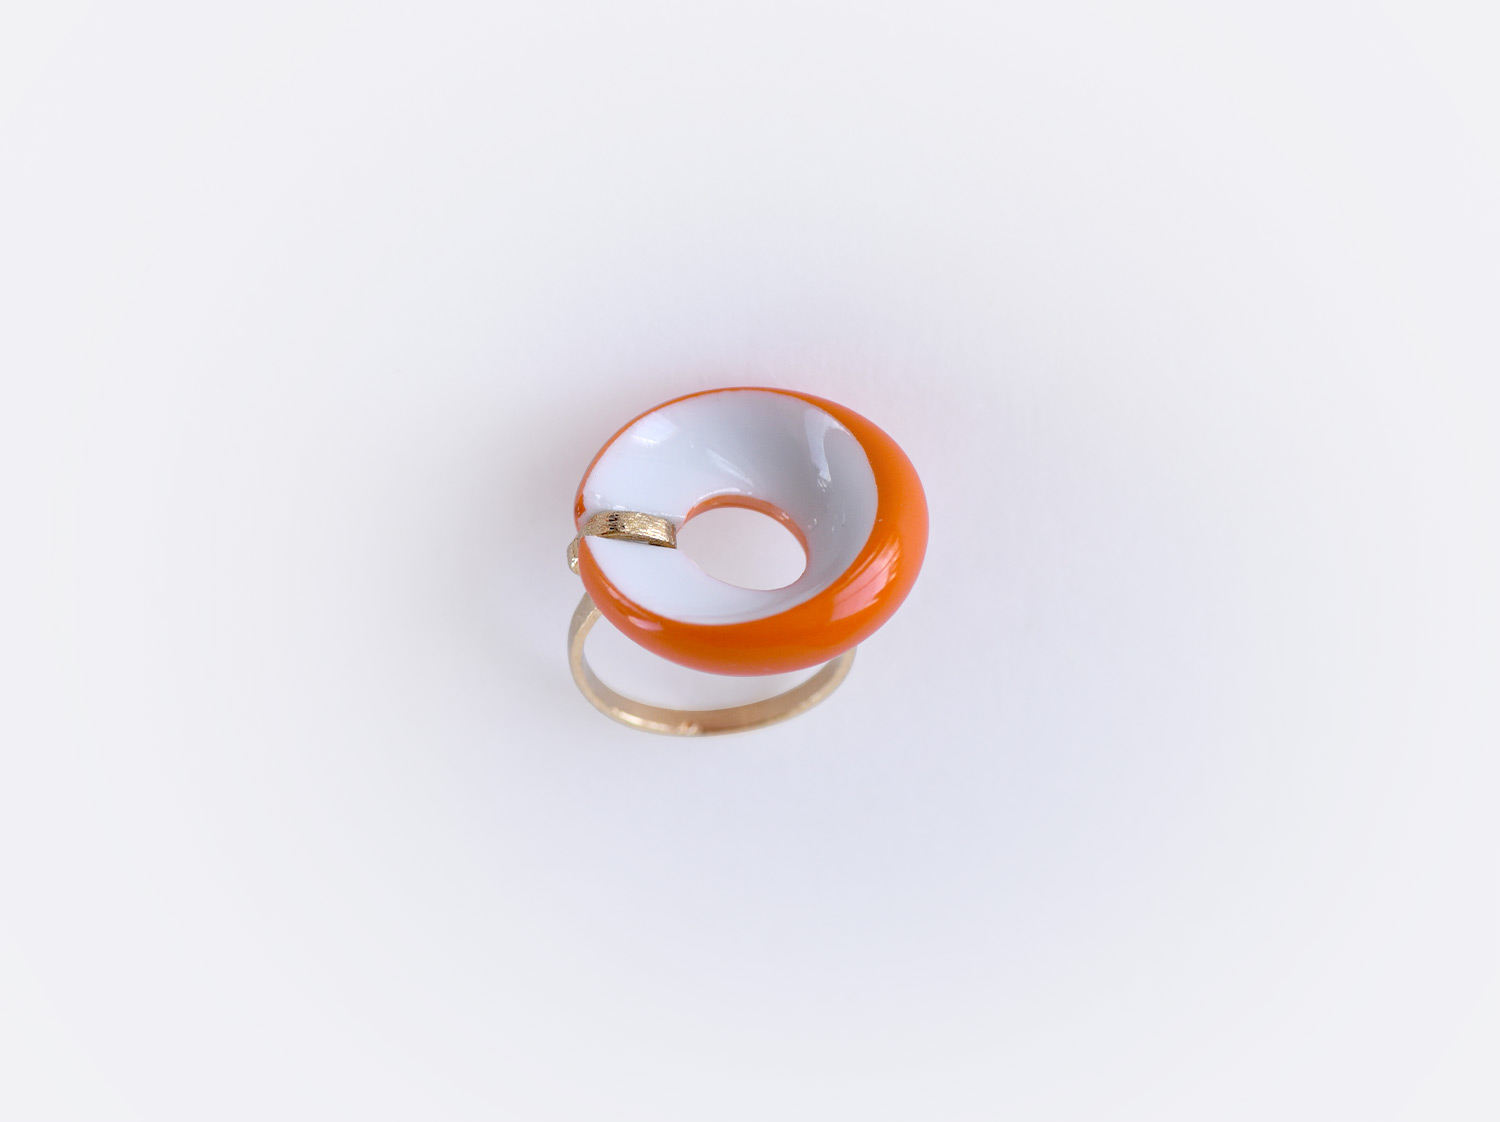 China Alba orange Flat ring of the collection ALBA ORANGE | Bernardaud